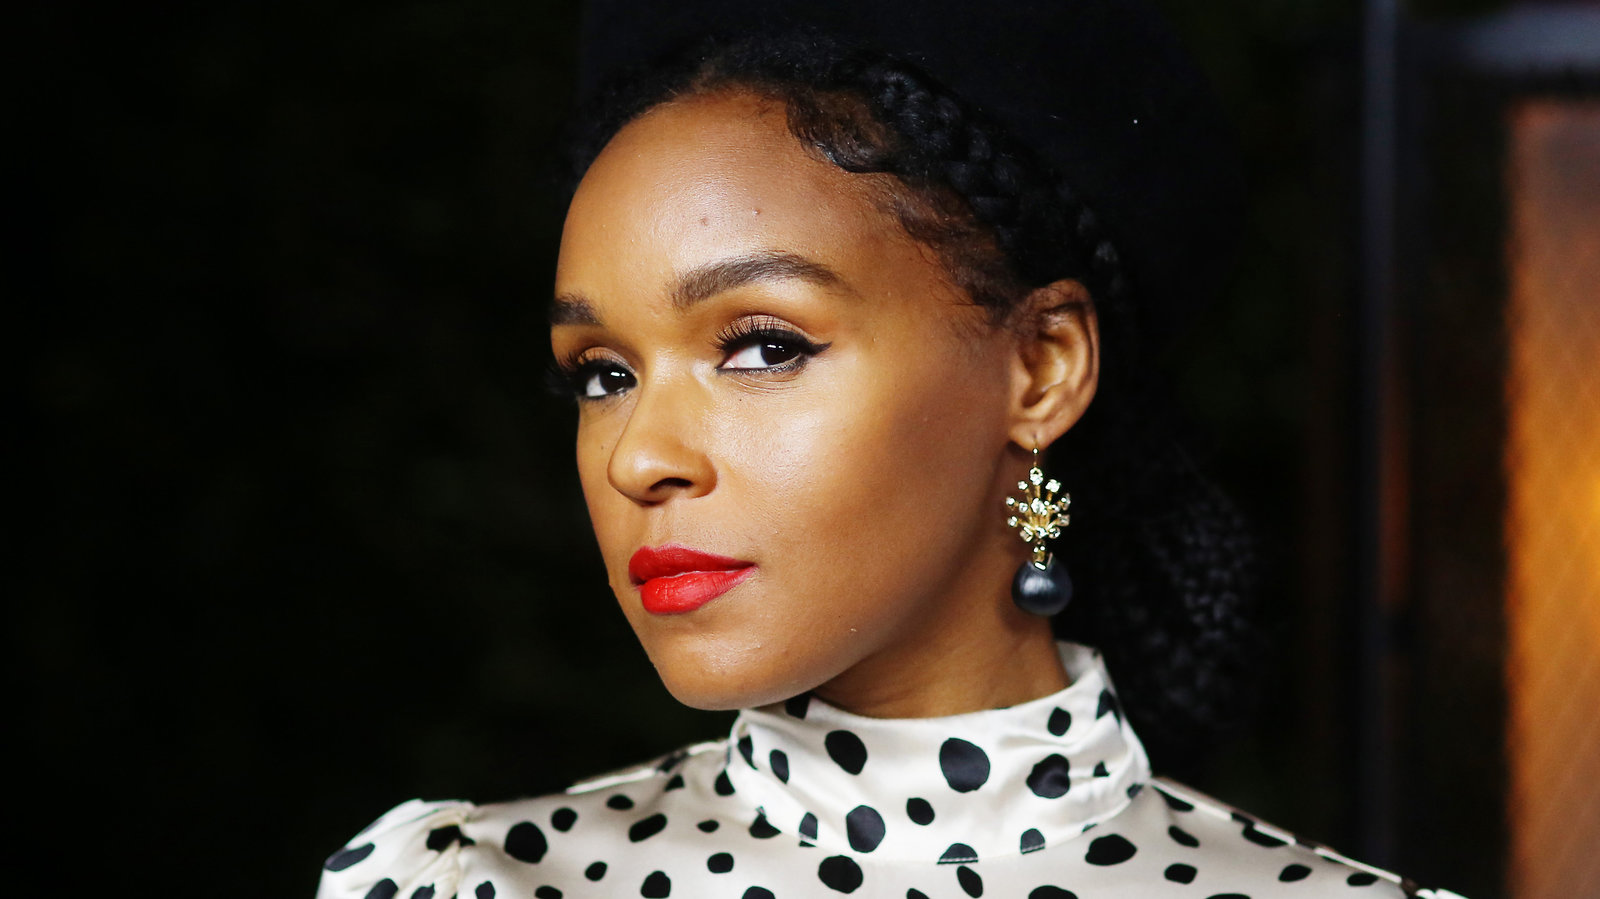 NPR: Janelle Monáe Wants To Represent The Underdog – In Music And Onscreen